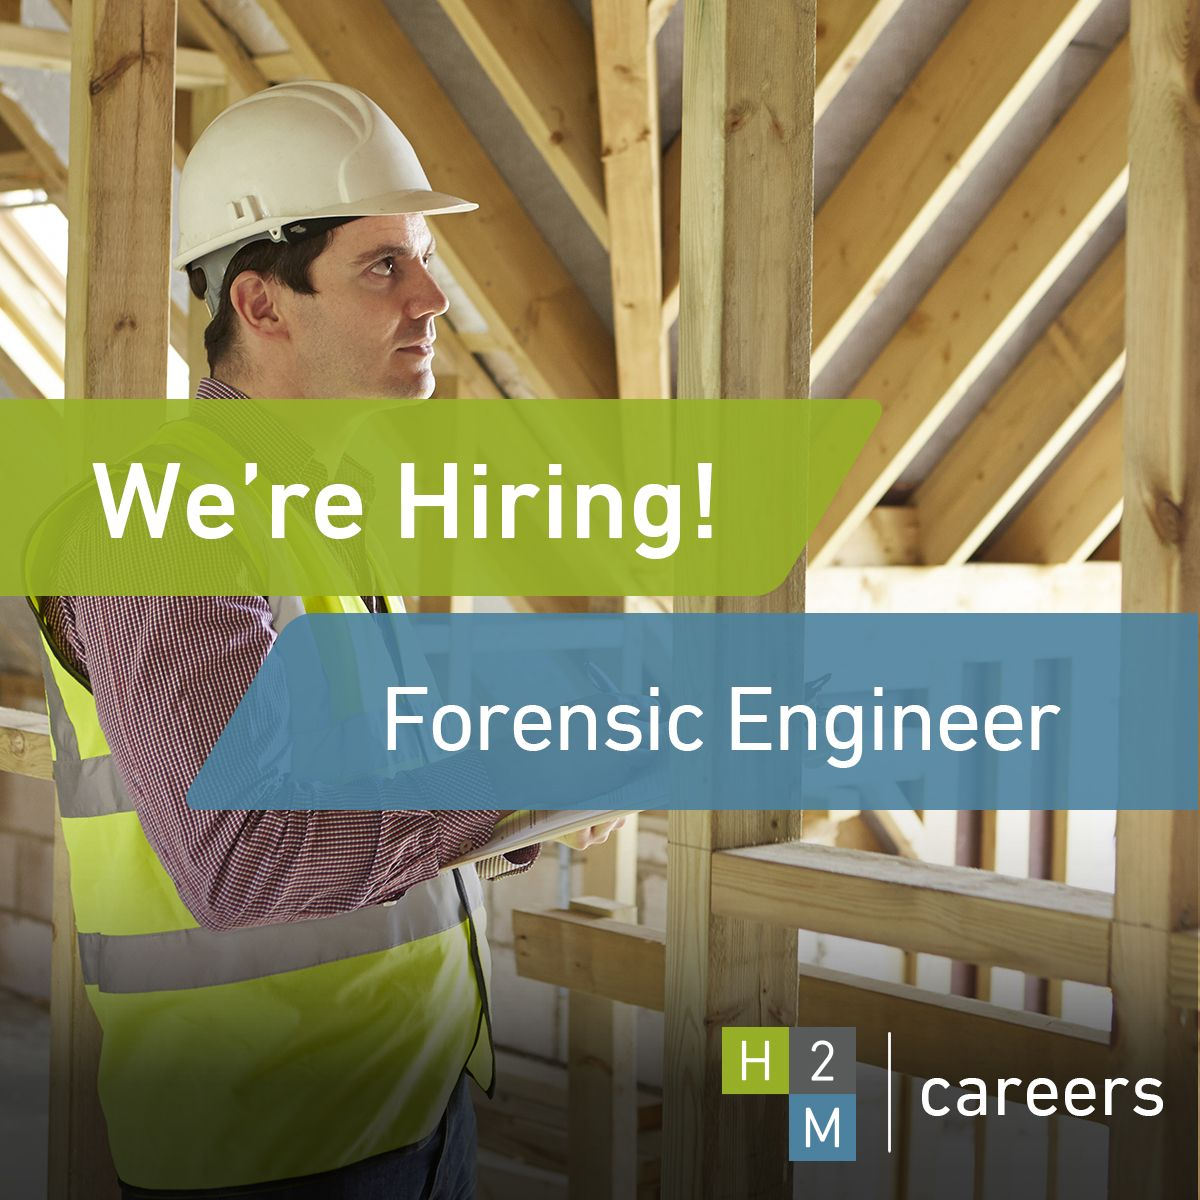 We Re Seeking A Forensic Engineer With 5 Years Of Experience In